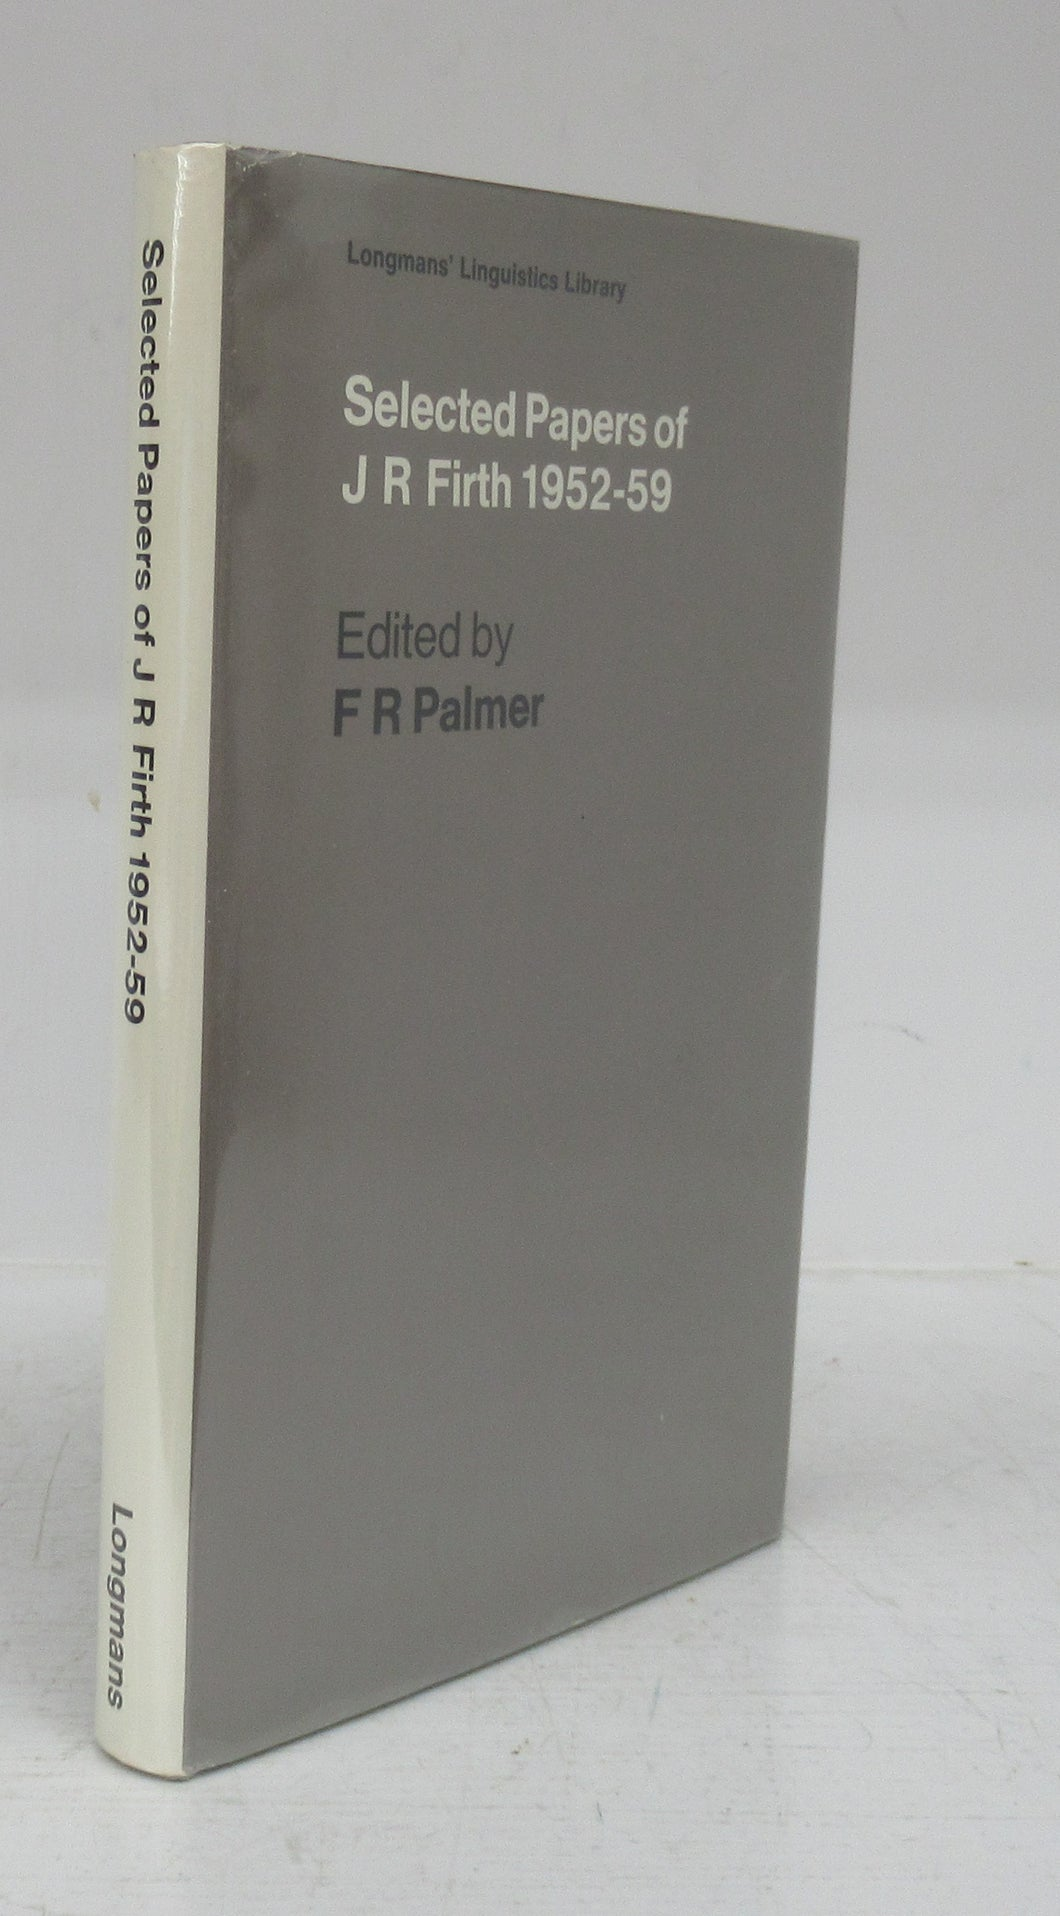 Selected Papers of J. R. Firth 1952-59